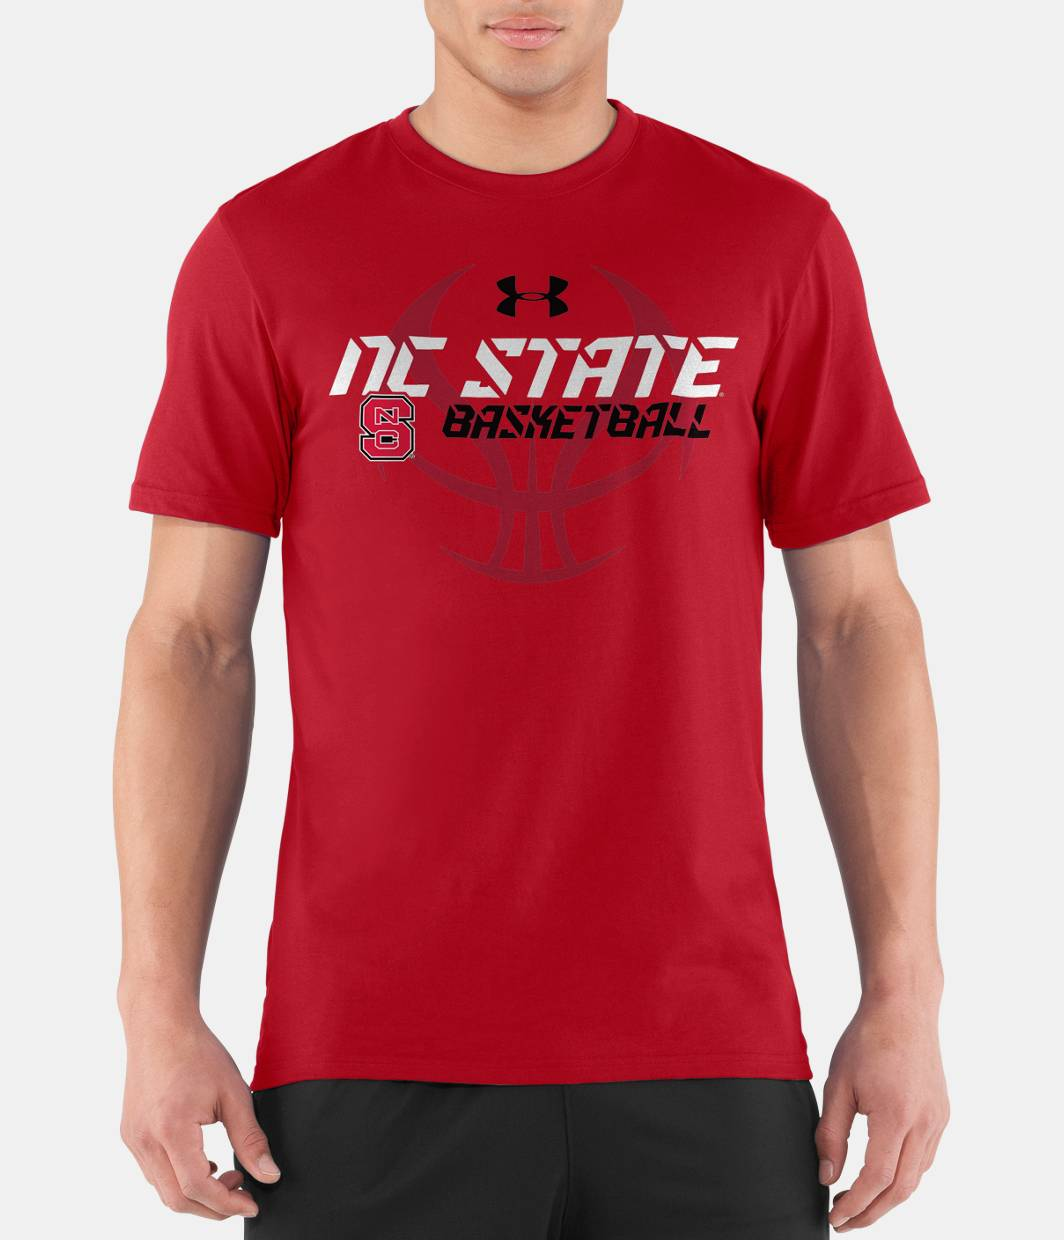 men s nc state ua basketball t shirt under armour us ForNc State Basketball Shirt